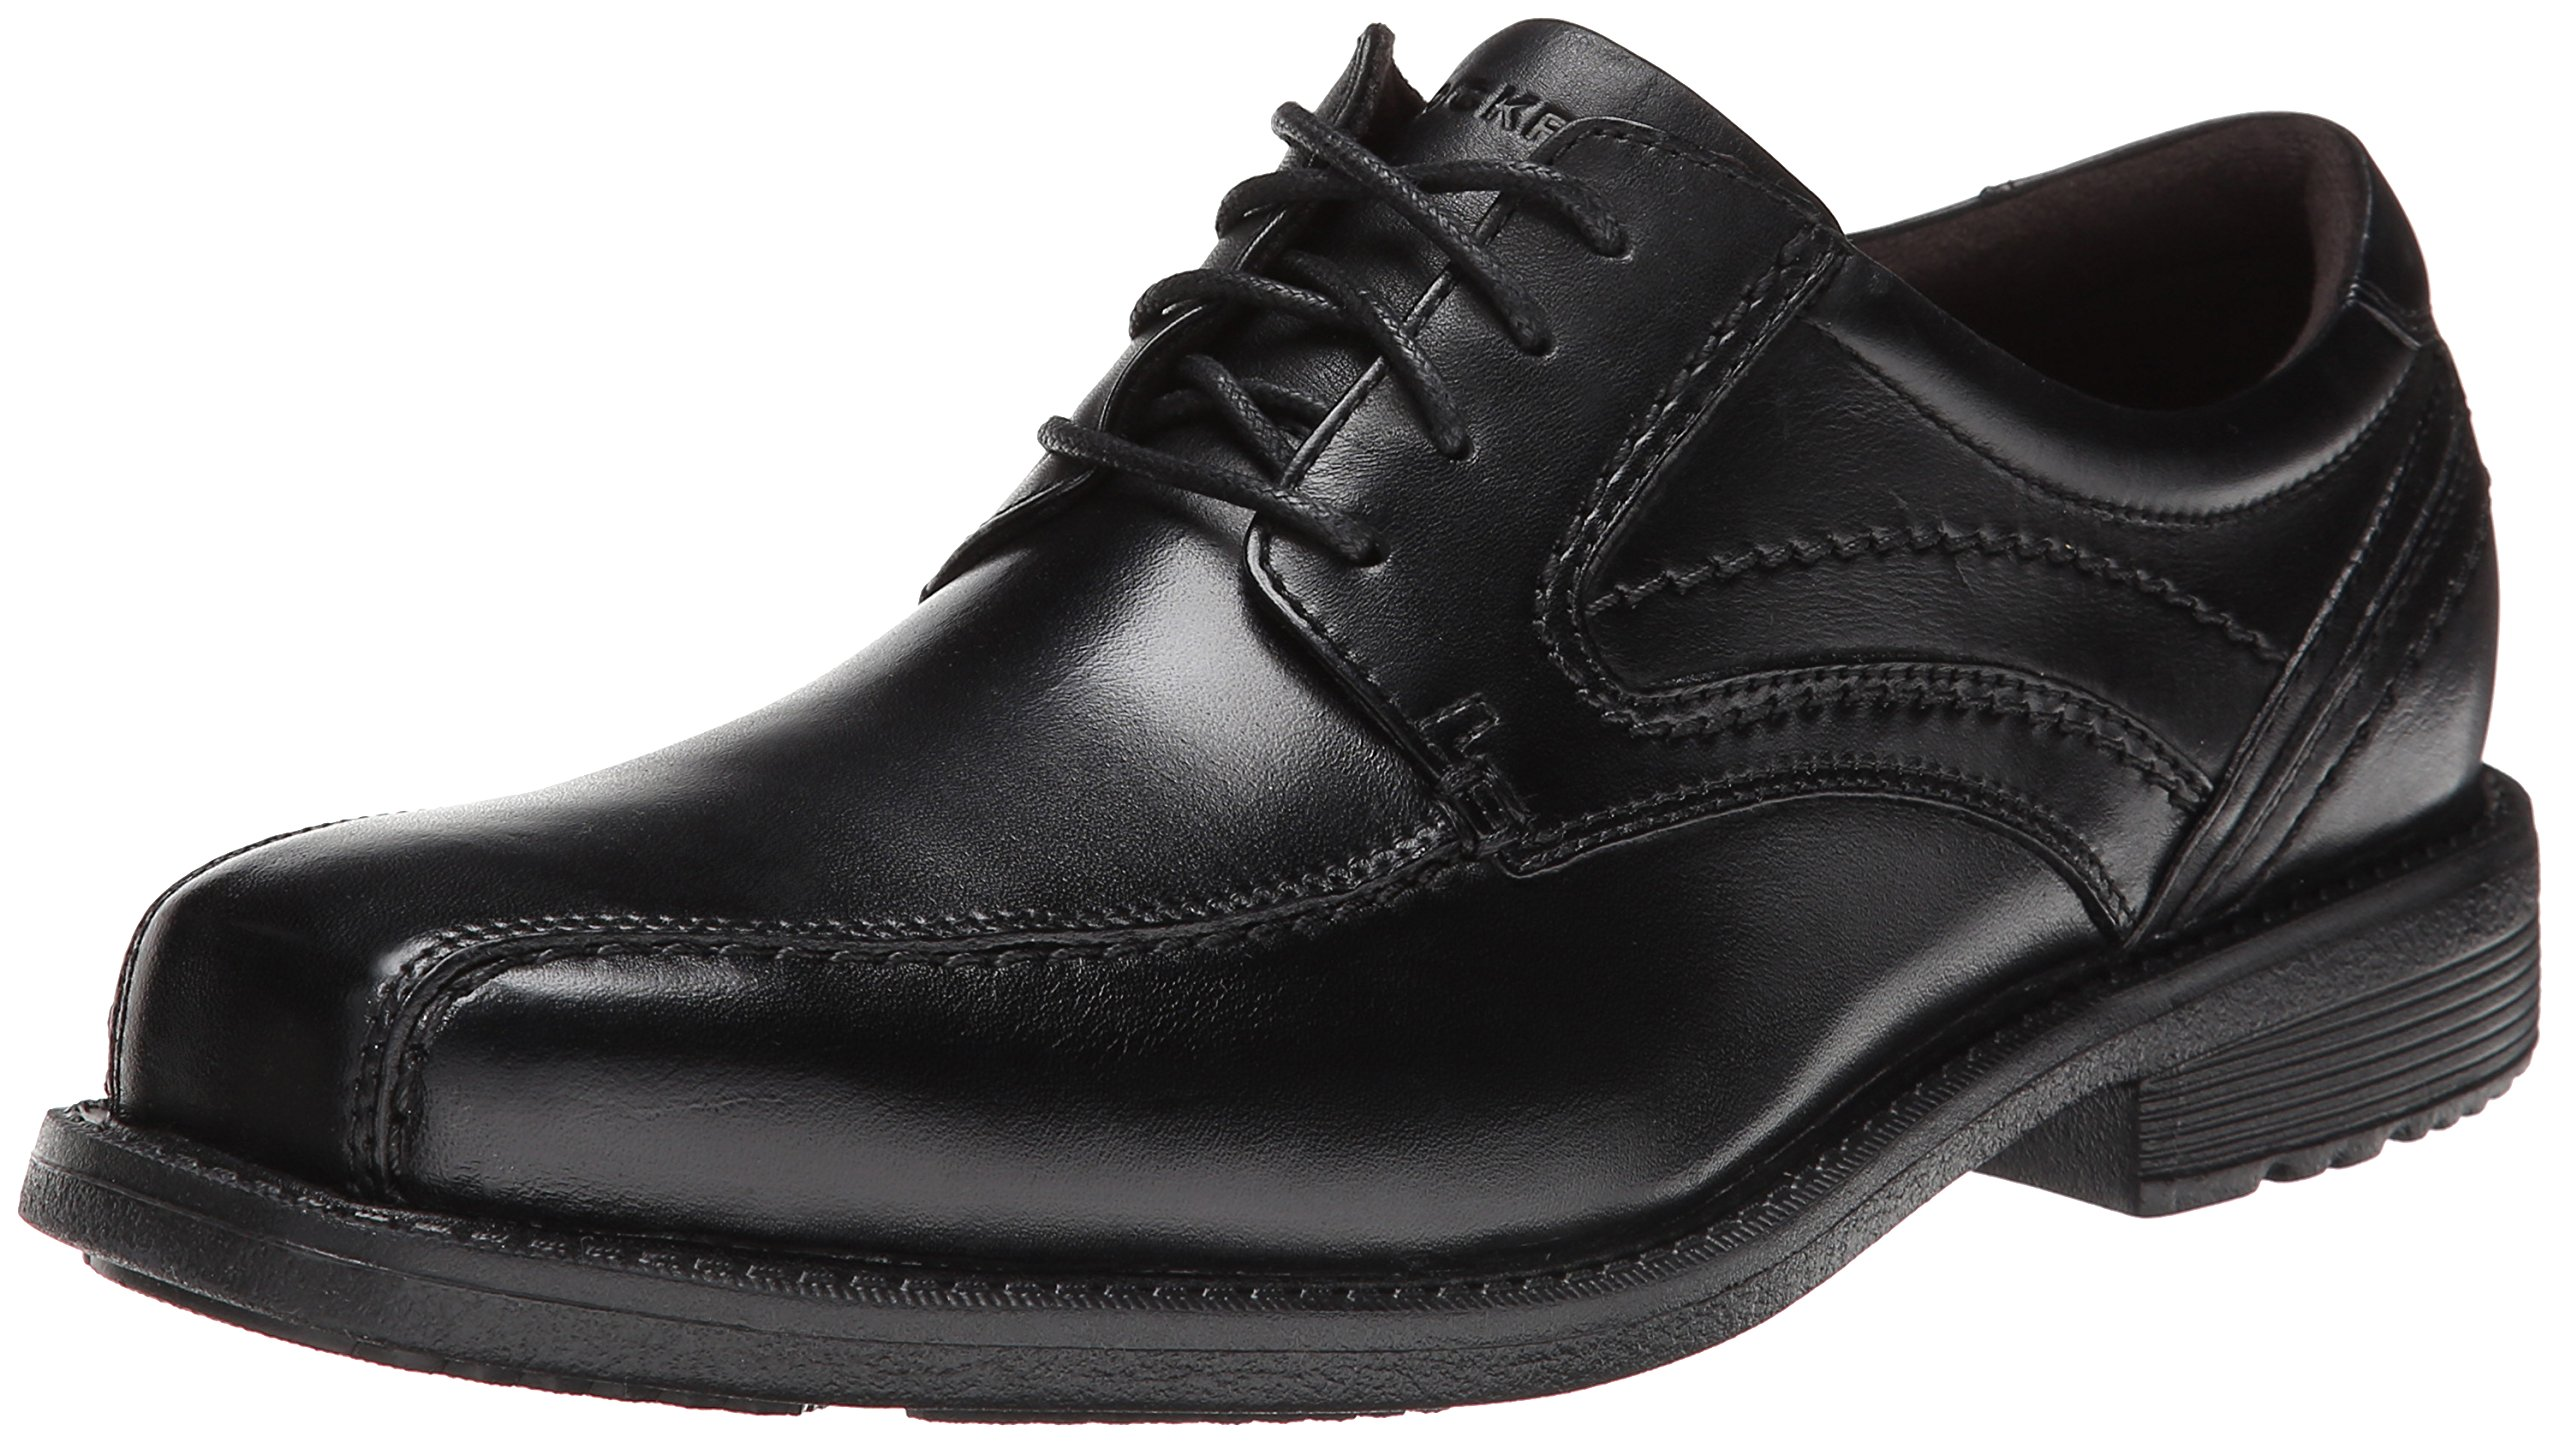 Rockport Men's Style Leader 2 Bike Toe Oxford Black Waxed Calf 11.5 M (D)-11.5  M by Rockport